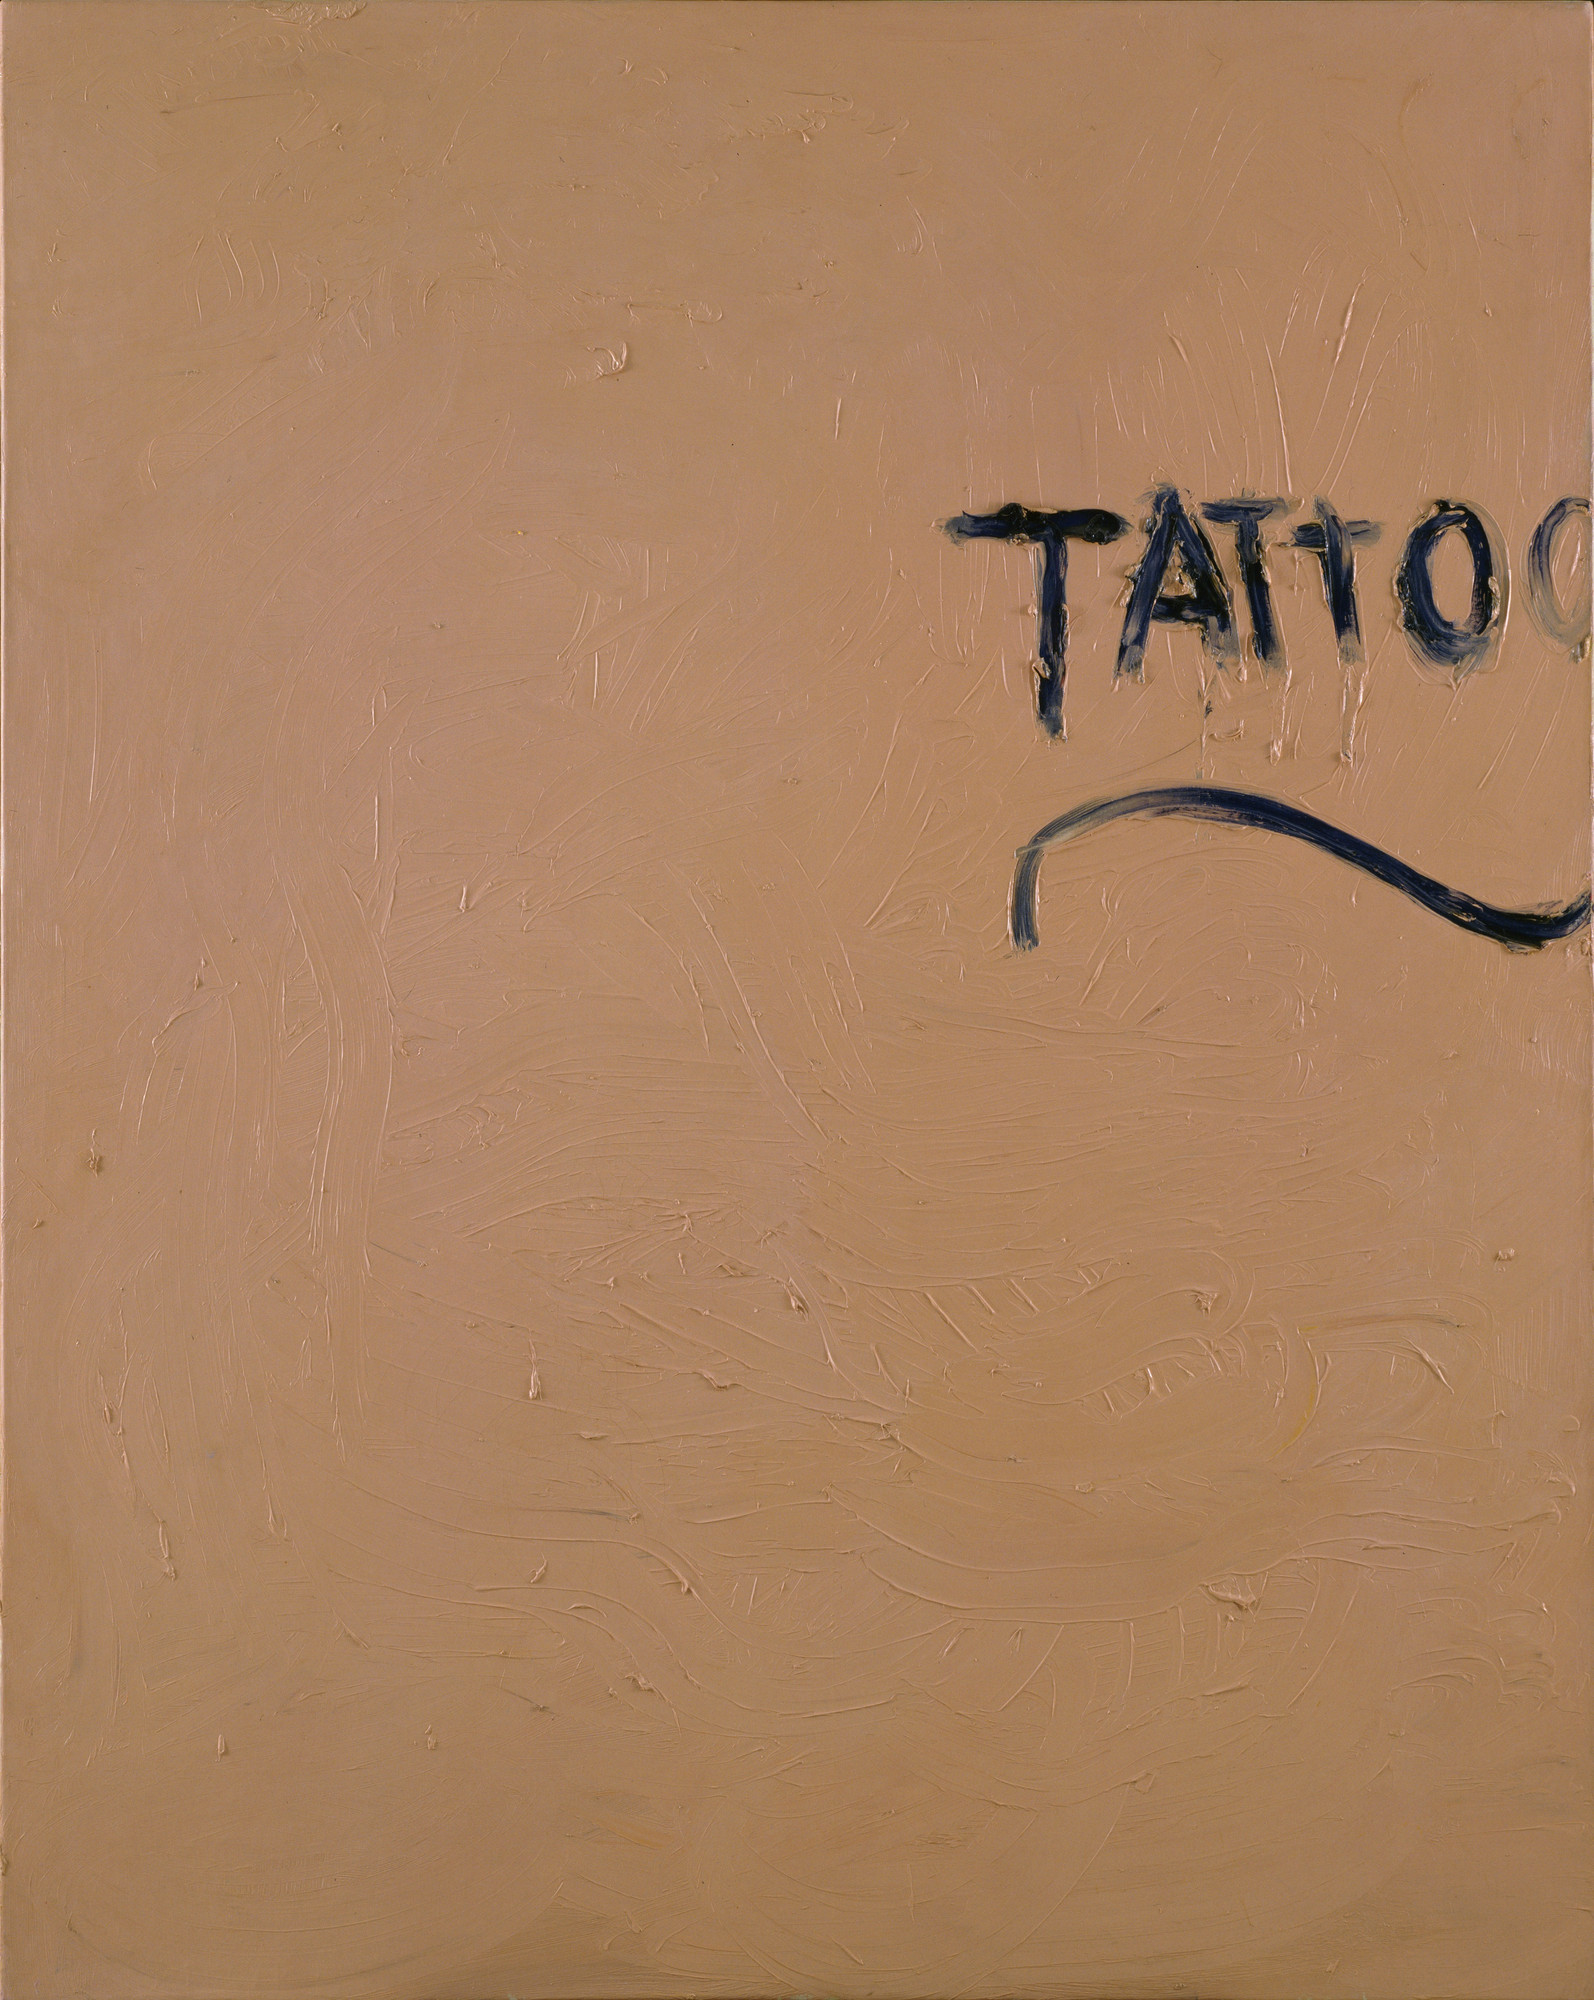 Jim Dine. Tattoo. 1961